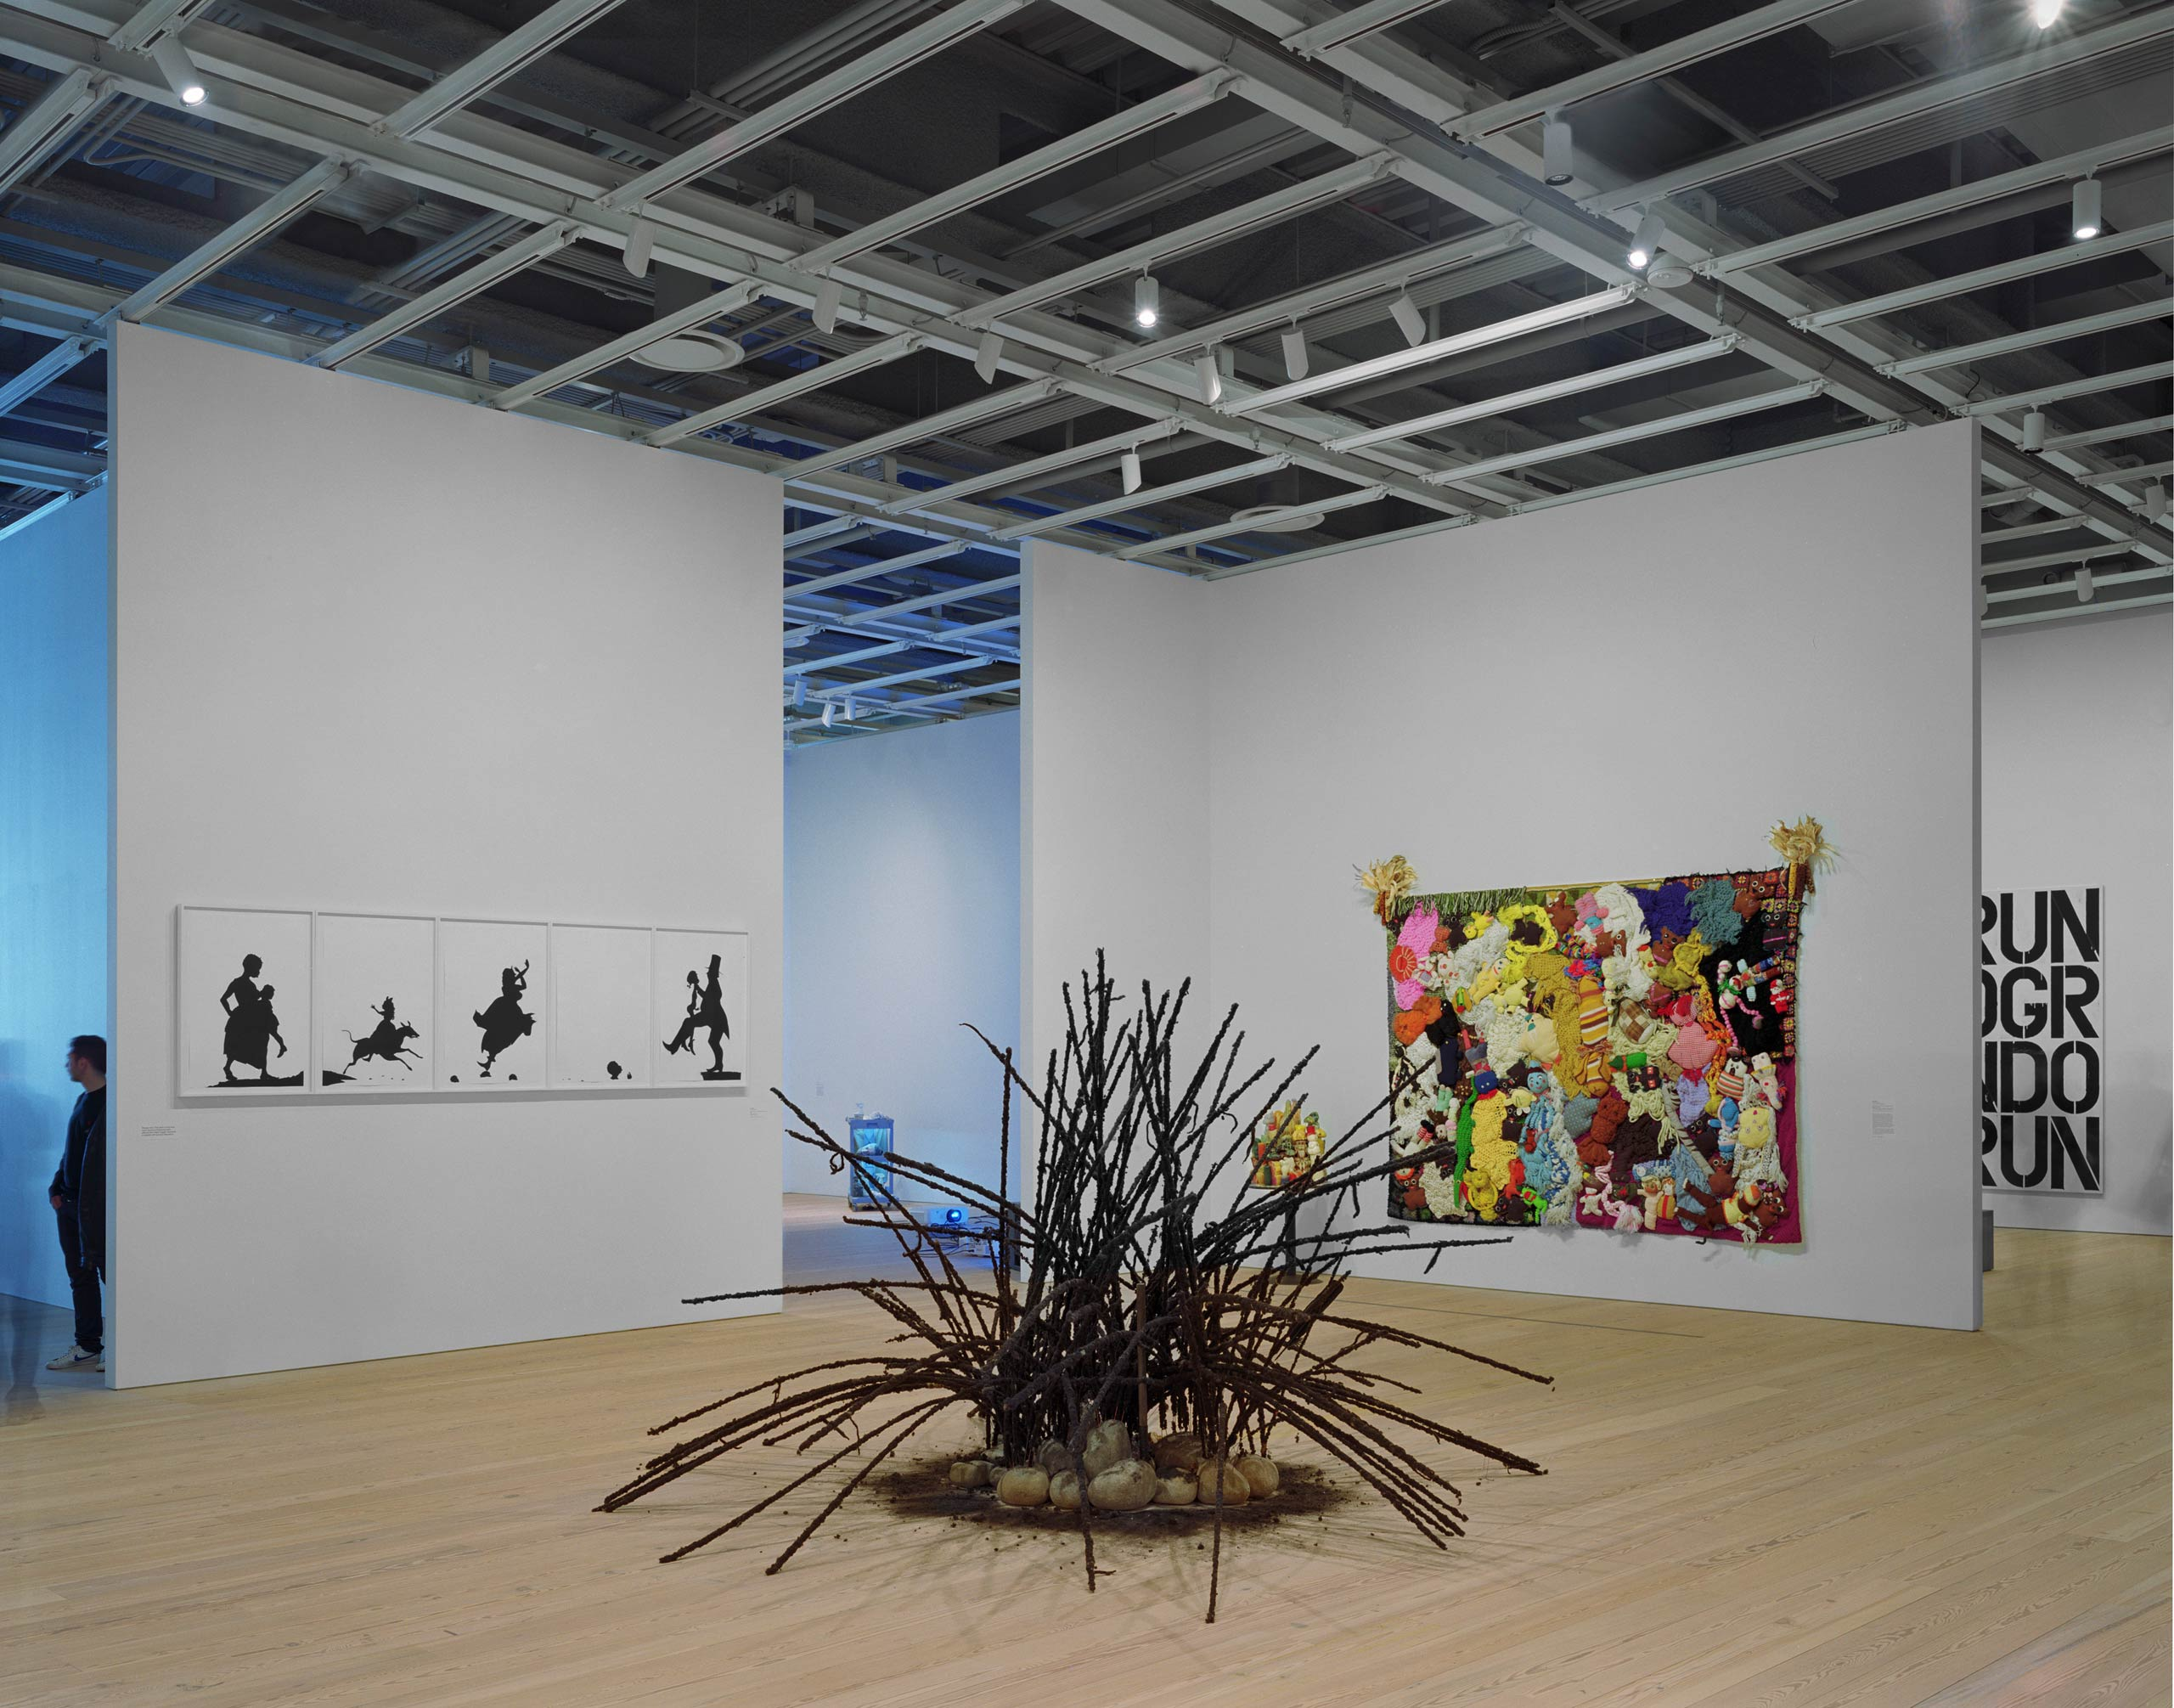 Artwork from left to right: Kara Walker, A Means to an End... A Shadow Drama in Five Acts, 1995; (foreground) David Hammons, untitled, 1992; Mike kelley, More Love Hours Than Can Ever Be Repaid and The Wages of Sin, 1987